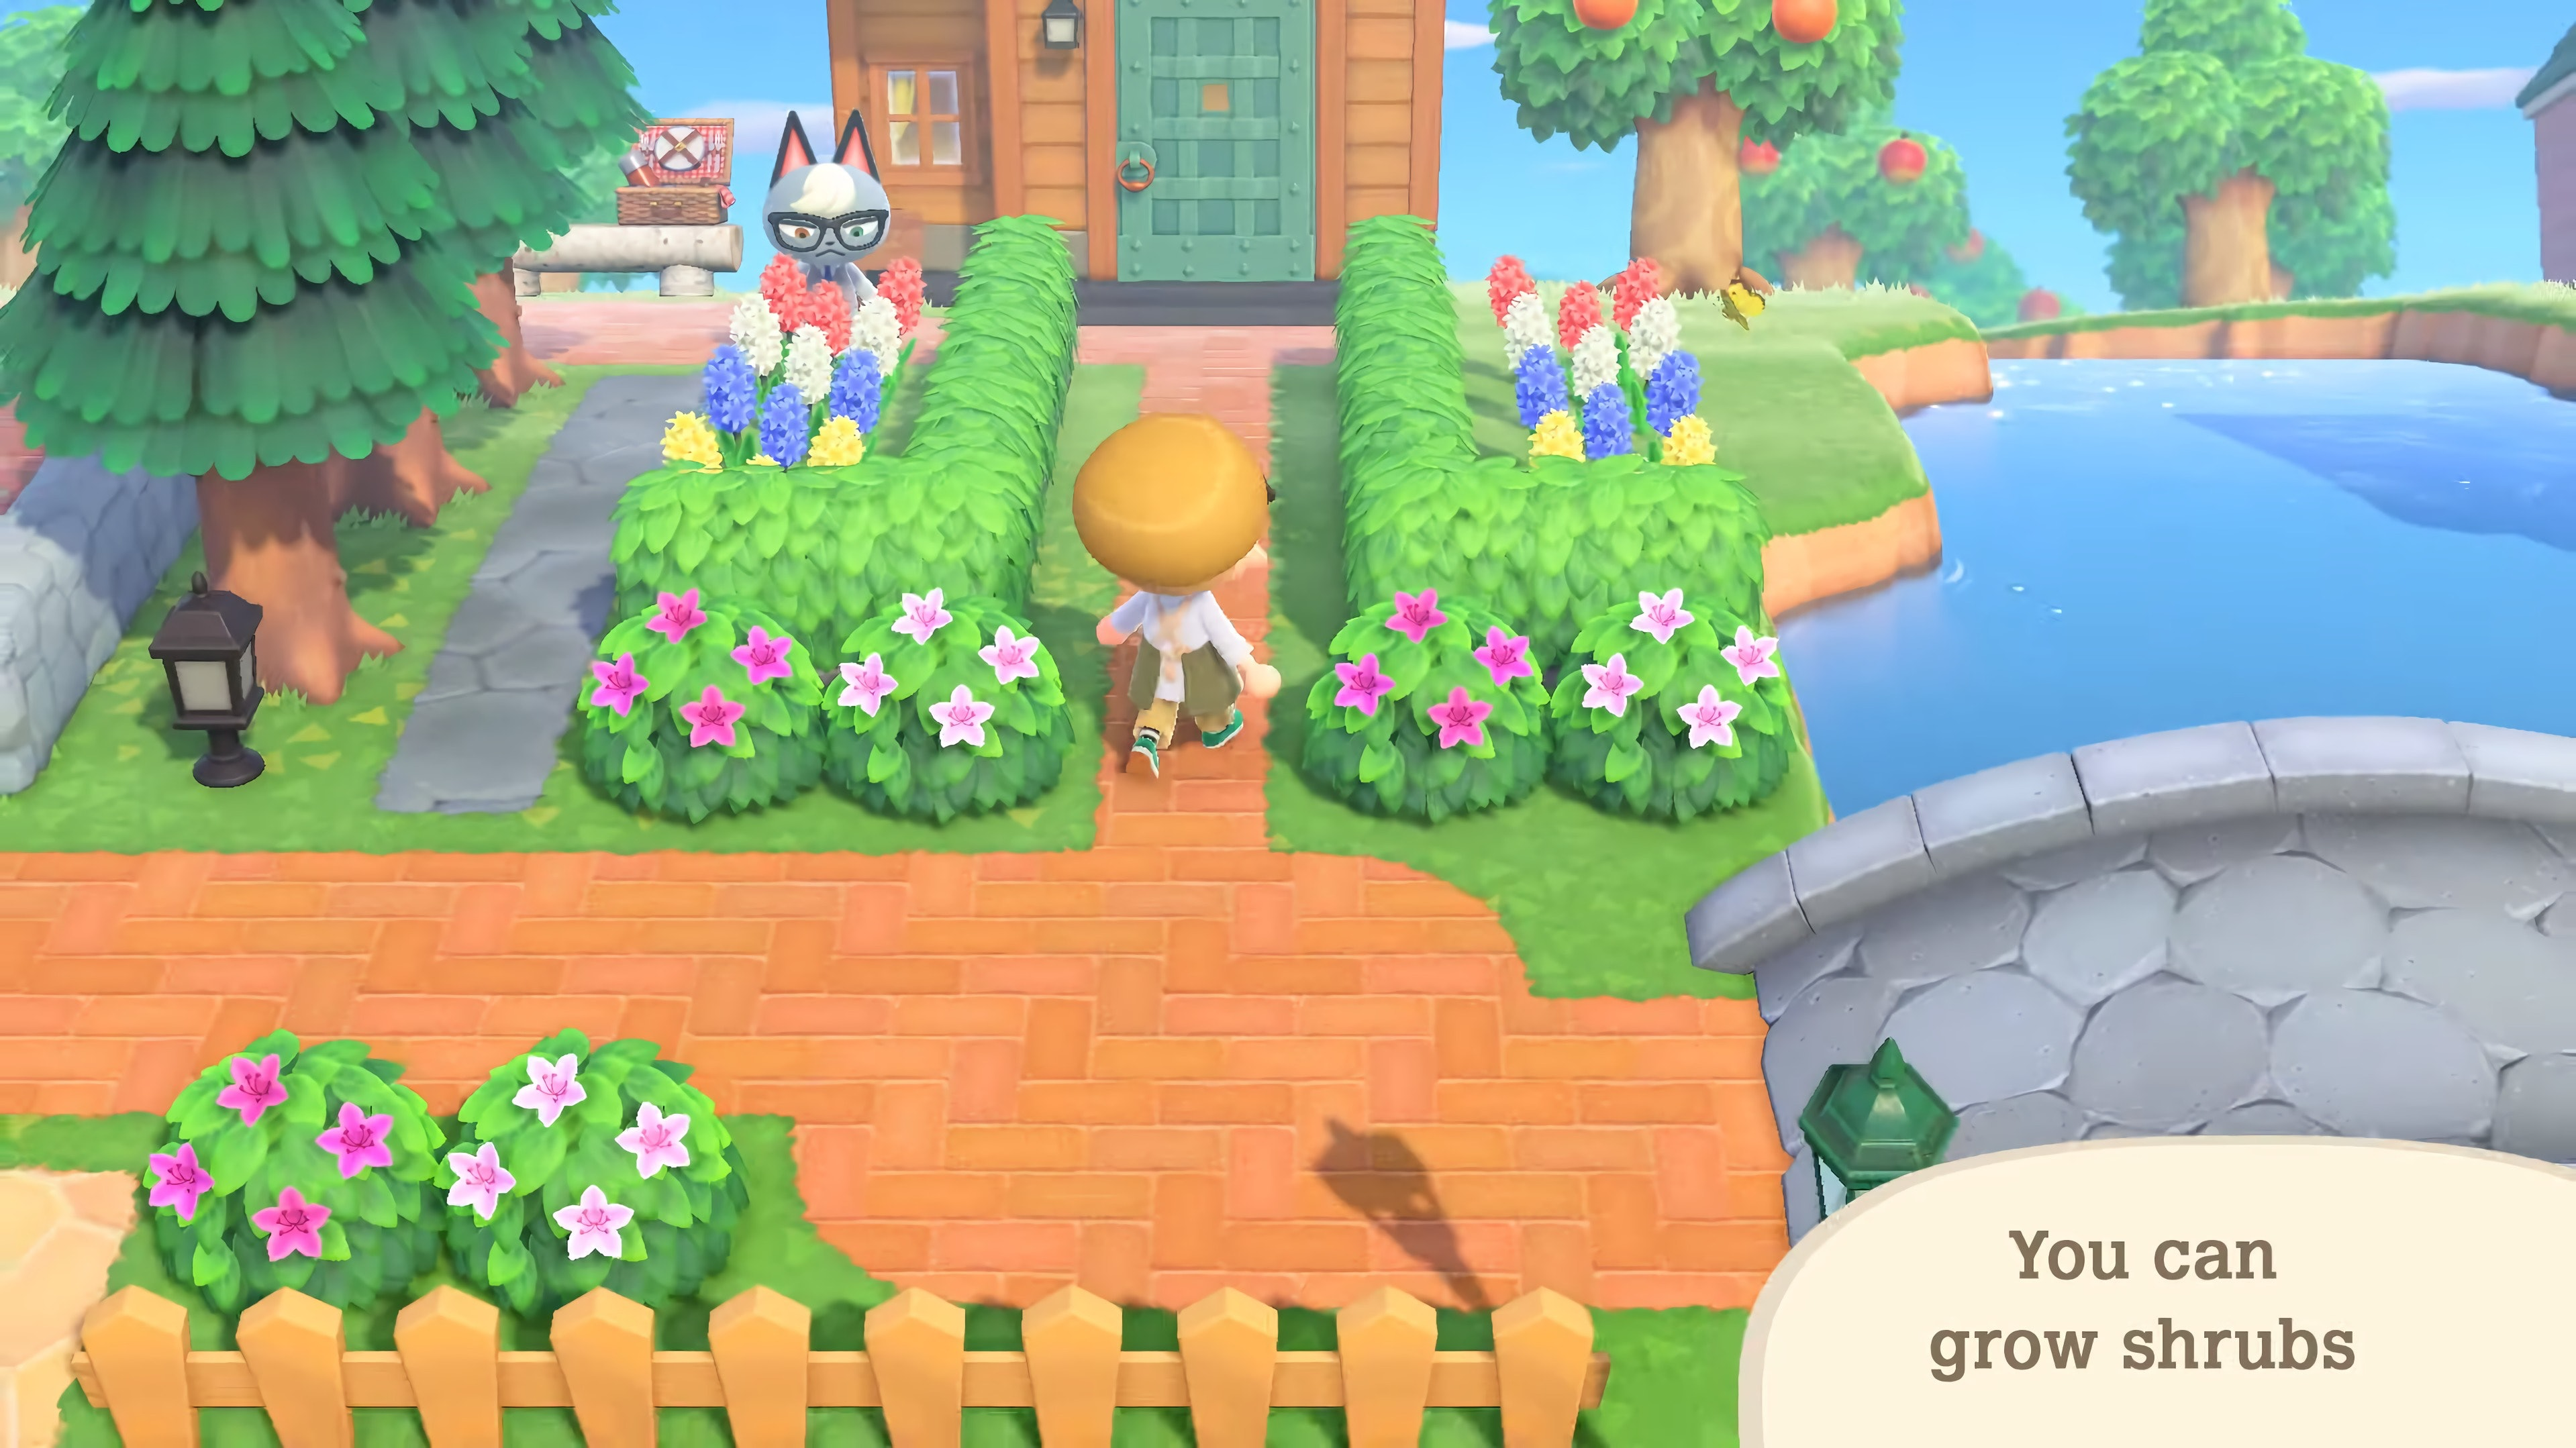 Animal Crossing New Horizons Is About To Get A New Garden Shop